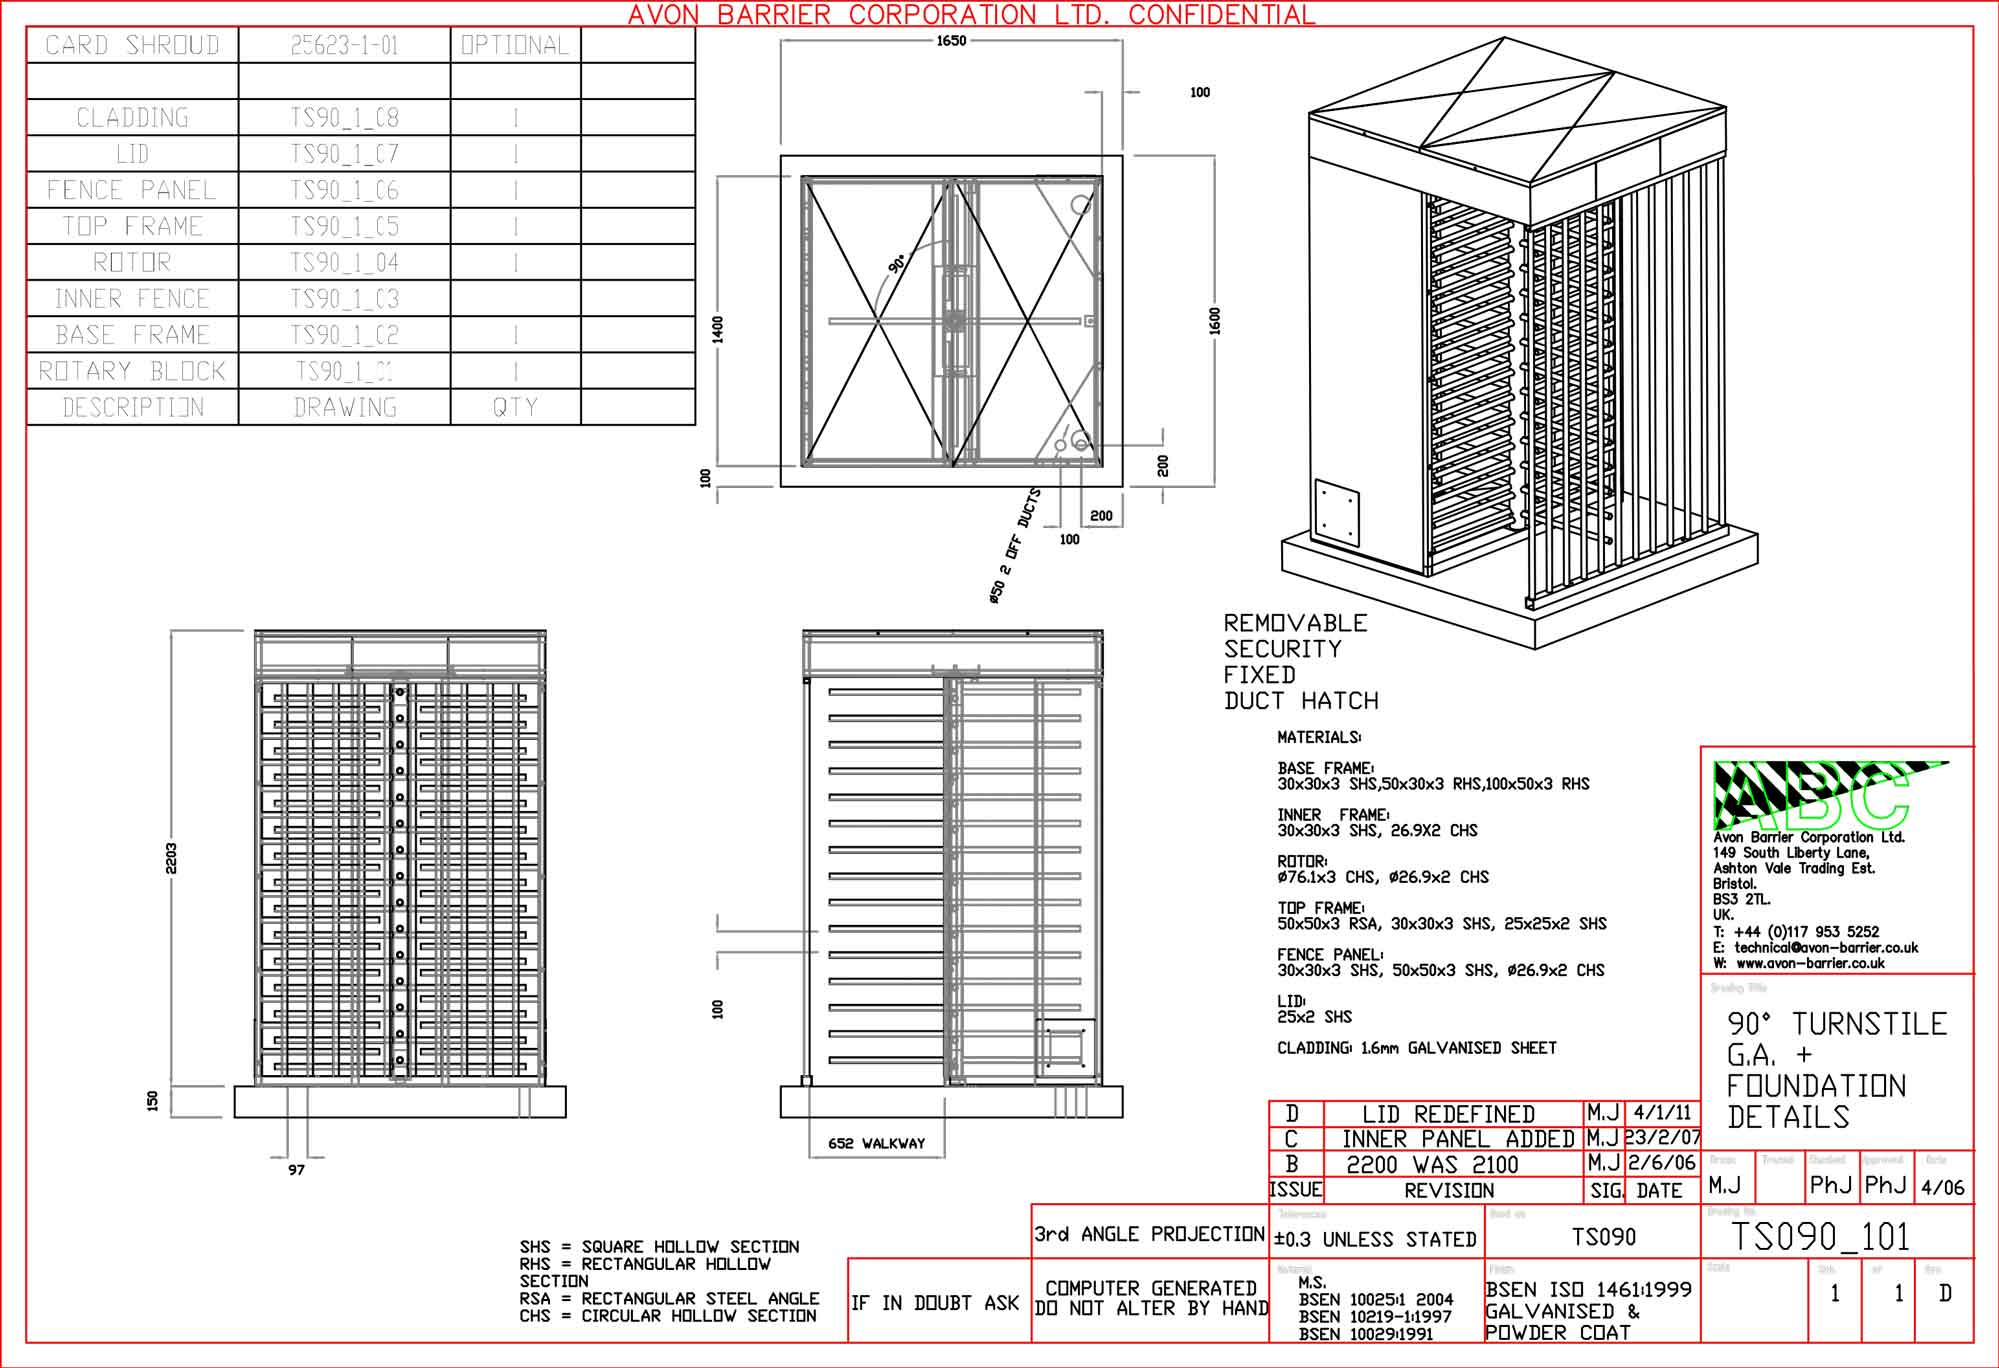 Resources-Drawings-PDF-Turnstiles-Pedestrian-Turnstile-Systems What Is Schematic Drawing on electronic design automation, ladder logic, technical drawing, united states army hawk missile drawing, function block diagram, diagramming software, one-line diagram, circuit diagram, piping and instrumentation diagram, control flow diagram, block diagram, military truck line drawing, straight-line diagram, data flow diagram, cross section, inside gold mine drawing, engineering drawing, functional flow block diagram, schematic capture,